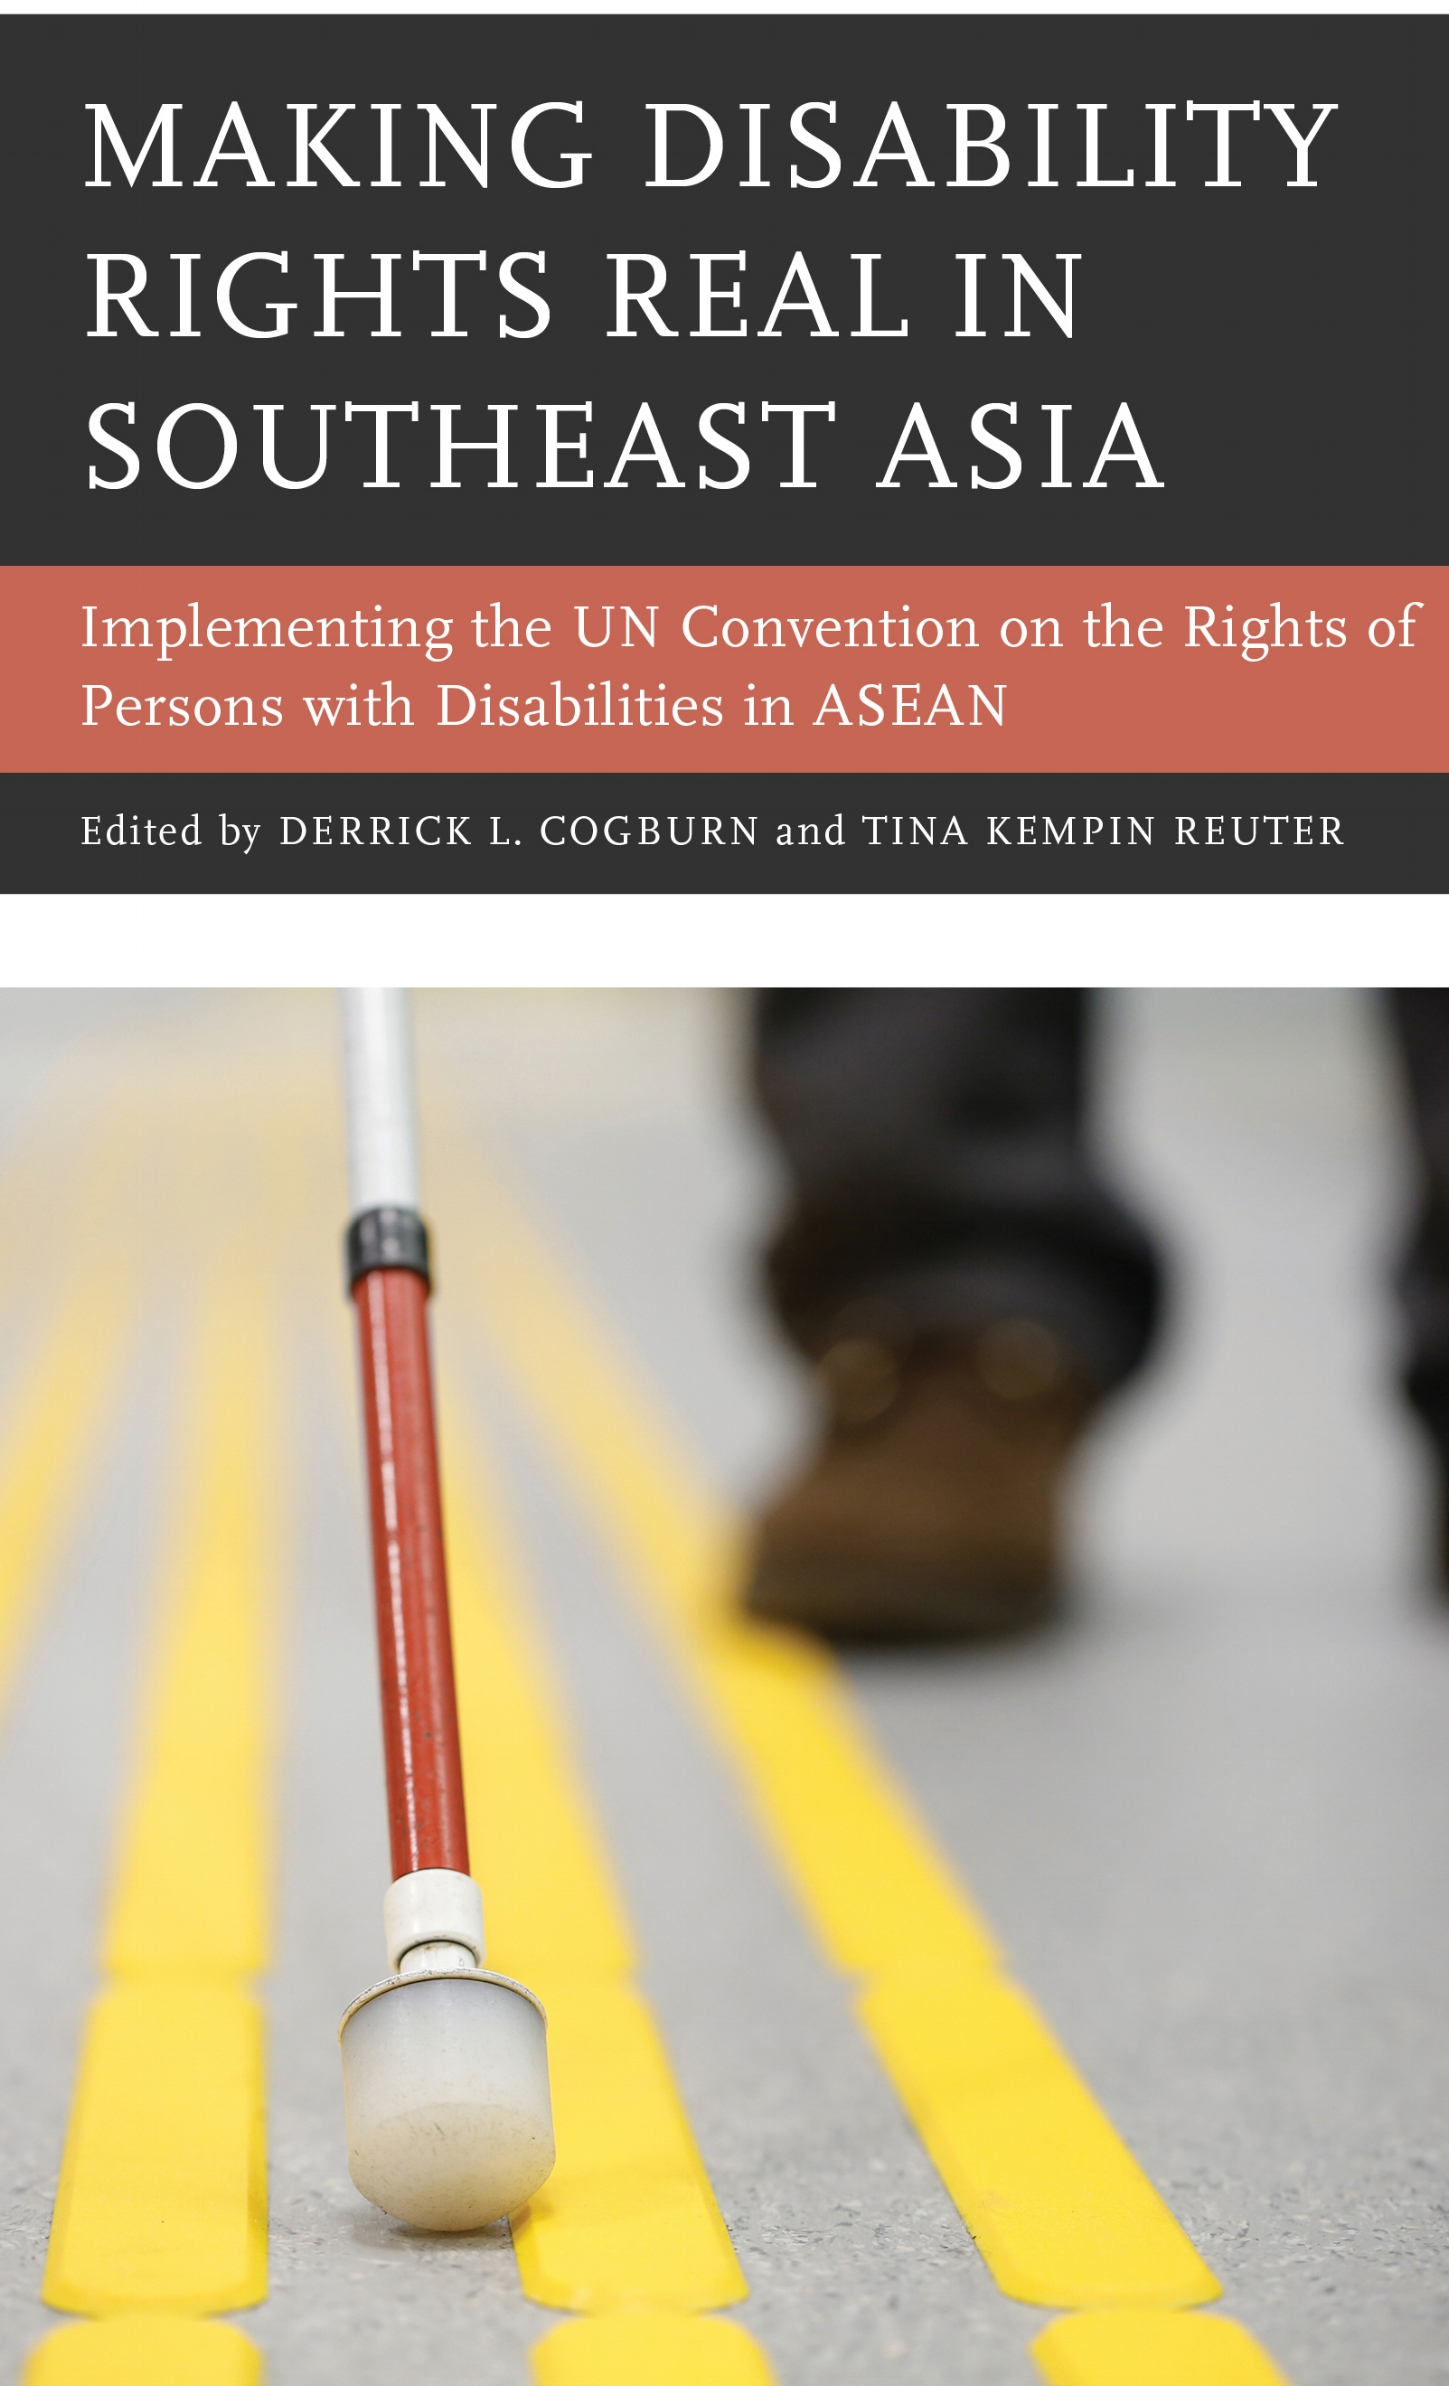 Making Disability Rights Real in Southeast Asia.jpeg